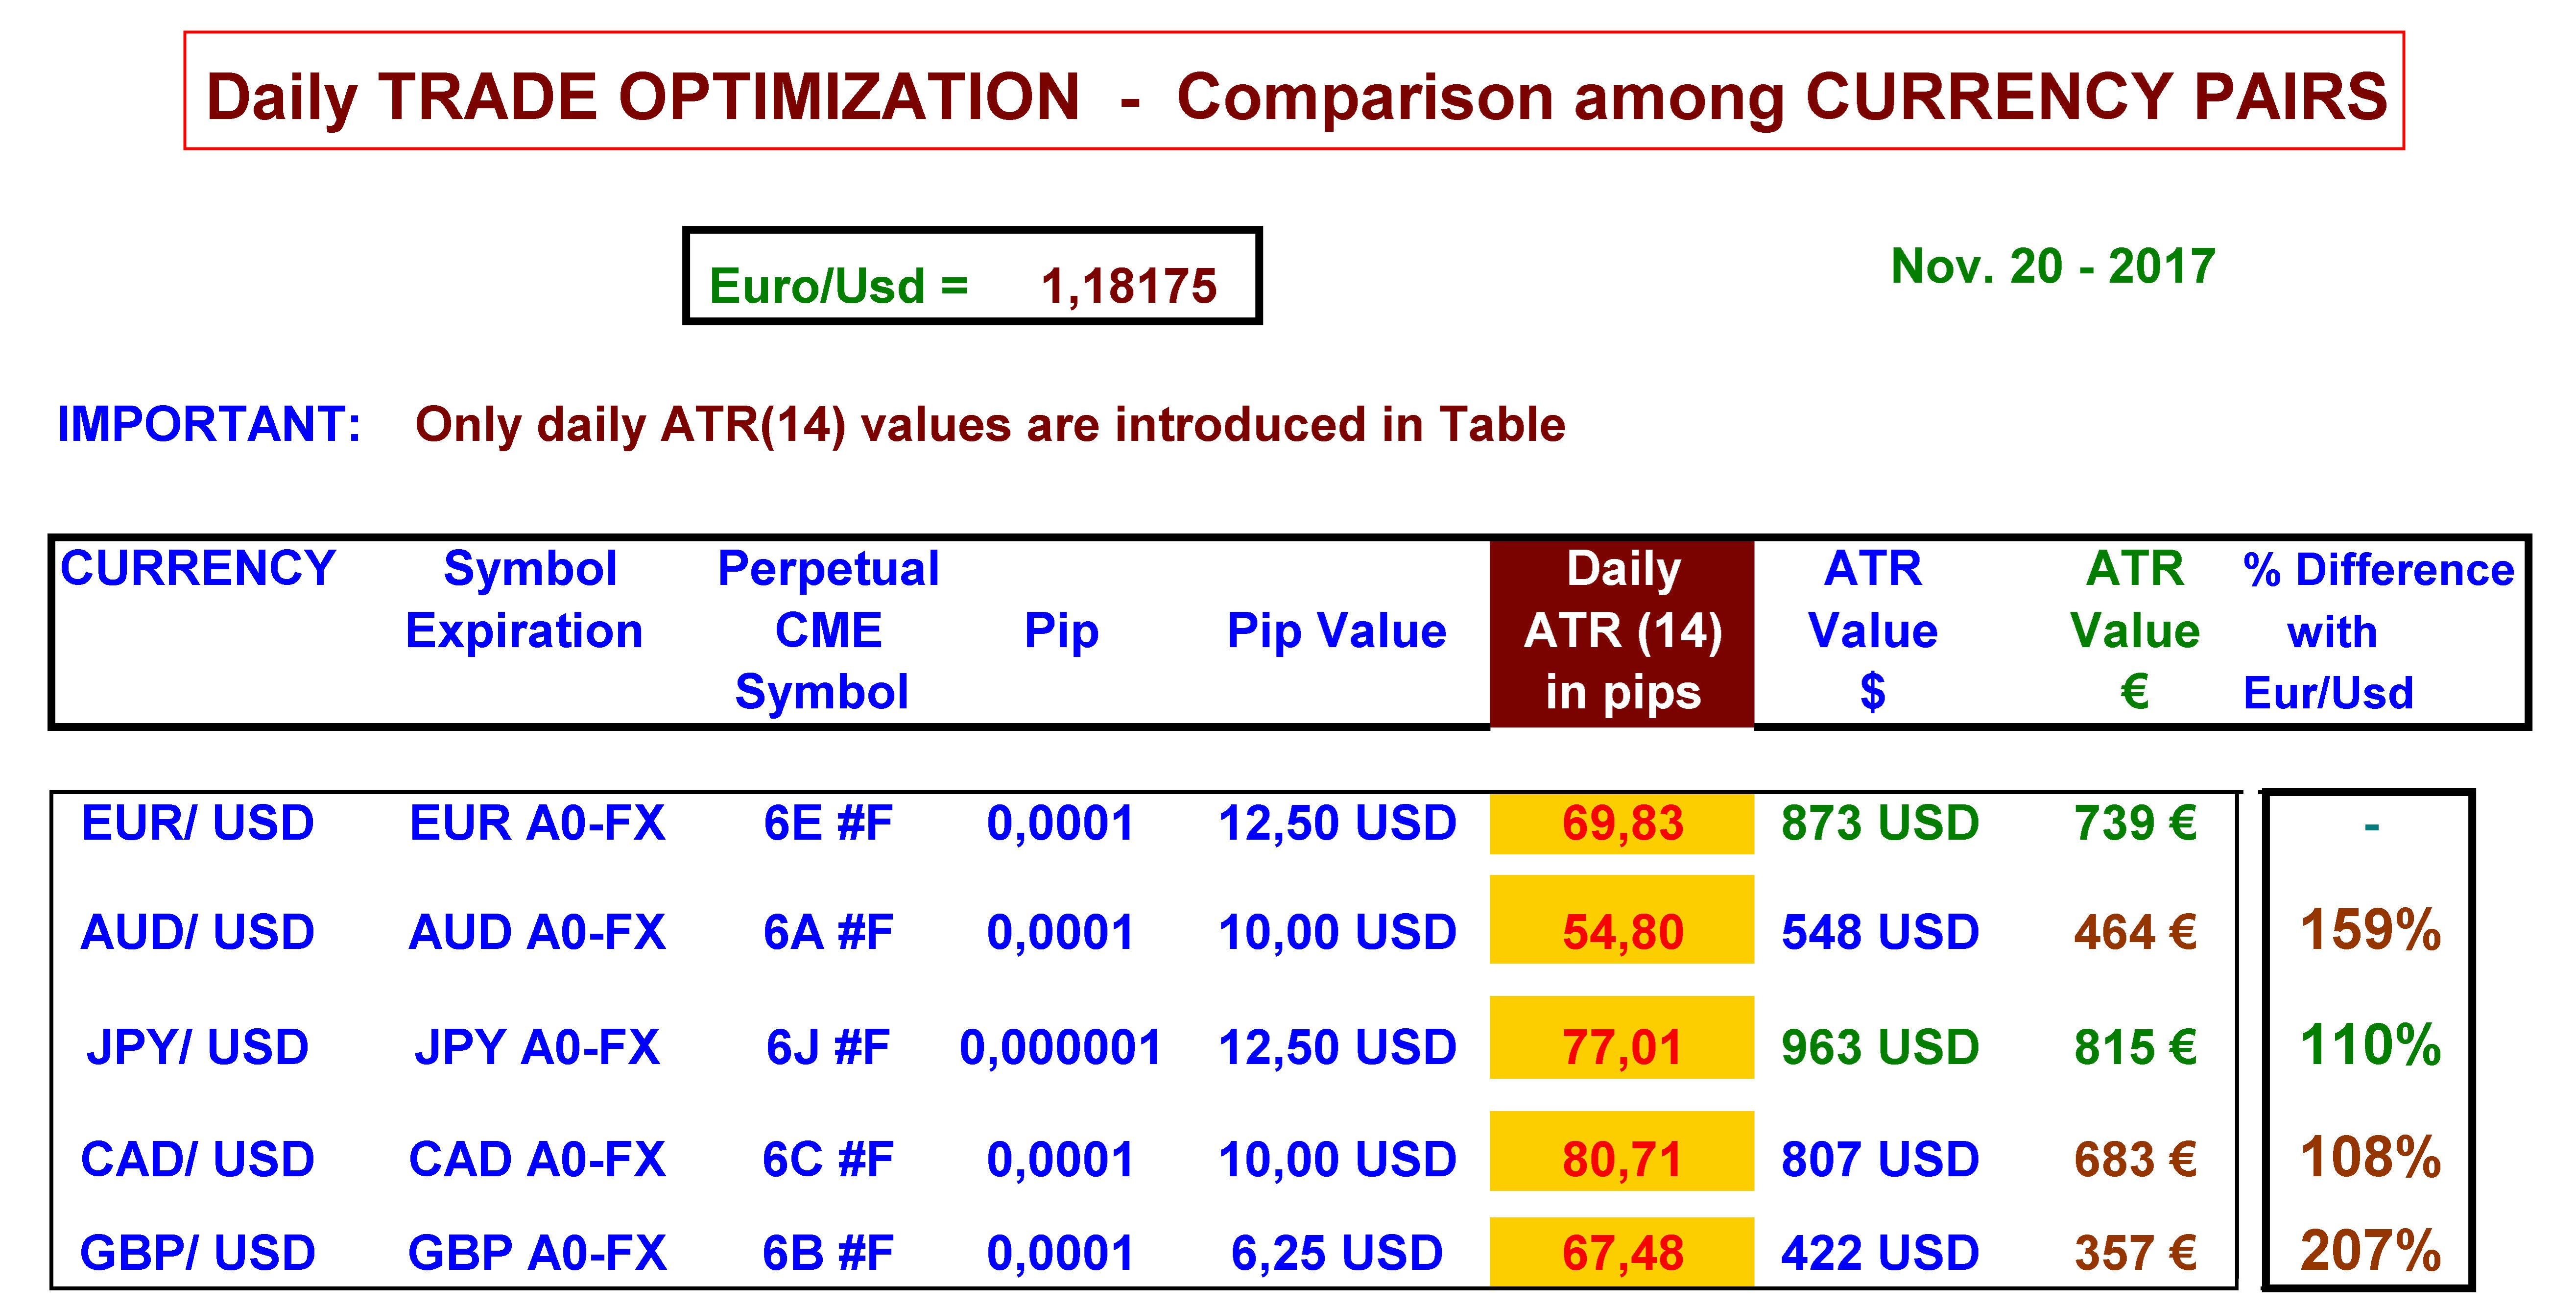 daily trade optimization comparison among currency pairs